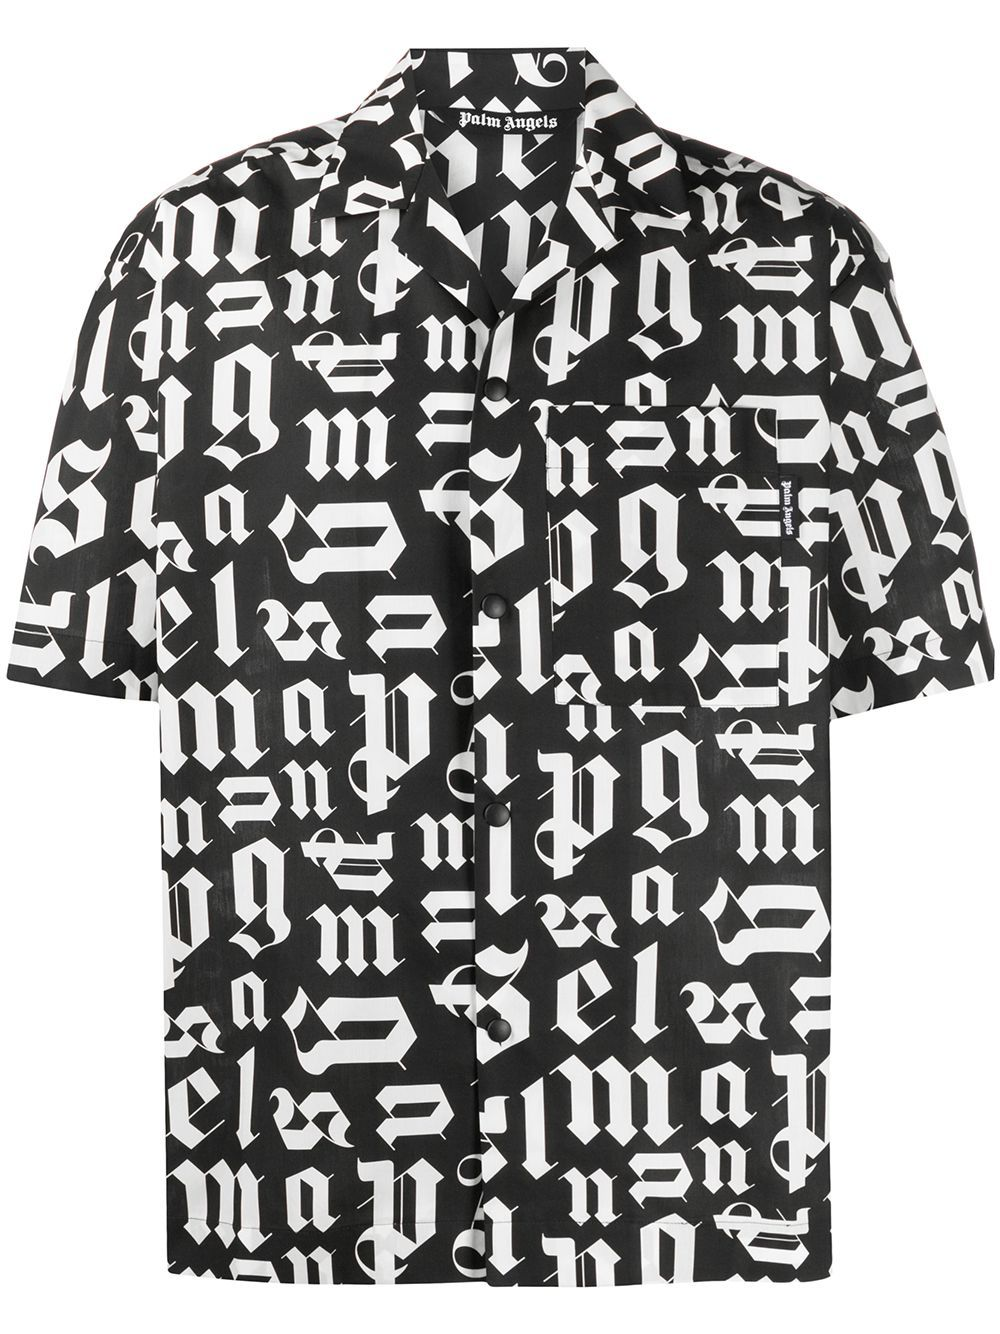 PALM ANGELS Broken Monogram Shirt Black/White